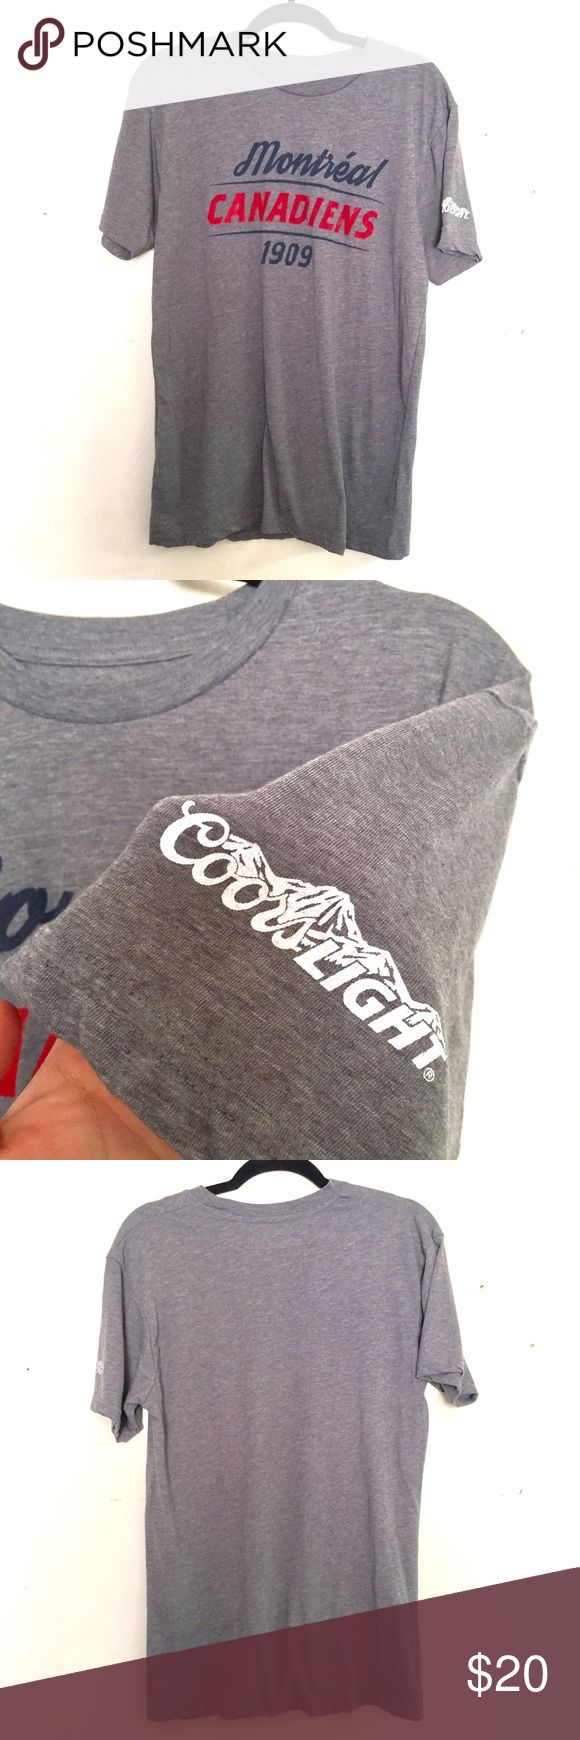 Montreal Canadians Coors Light Tshirt Large Men's Montreal Canadians Coors Light gray Tshirt. Men's Size Large. Excellent condition. NWOT. Shirts Tees - Short Sleeve